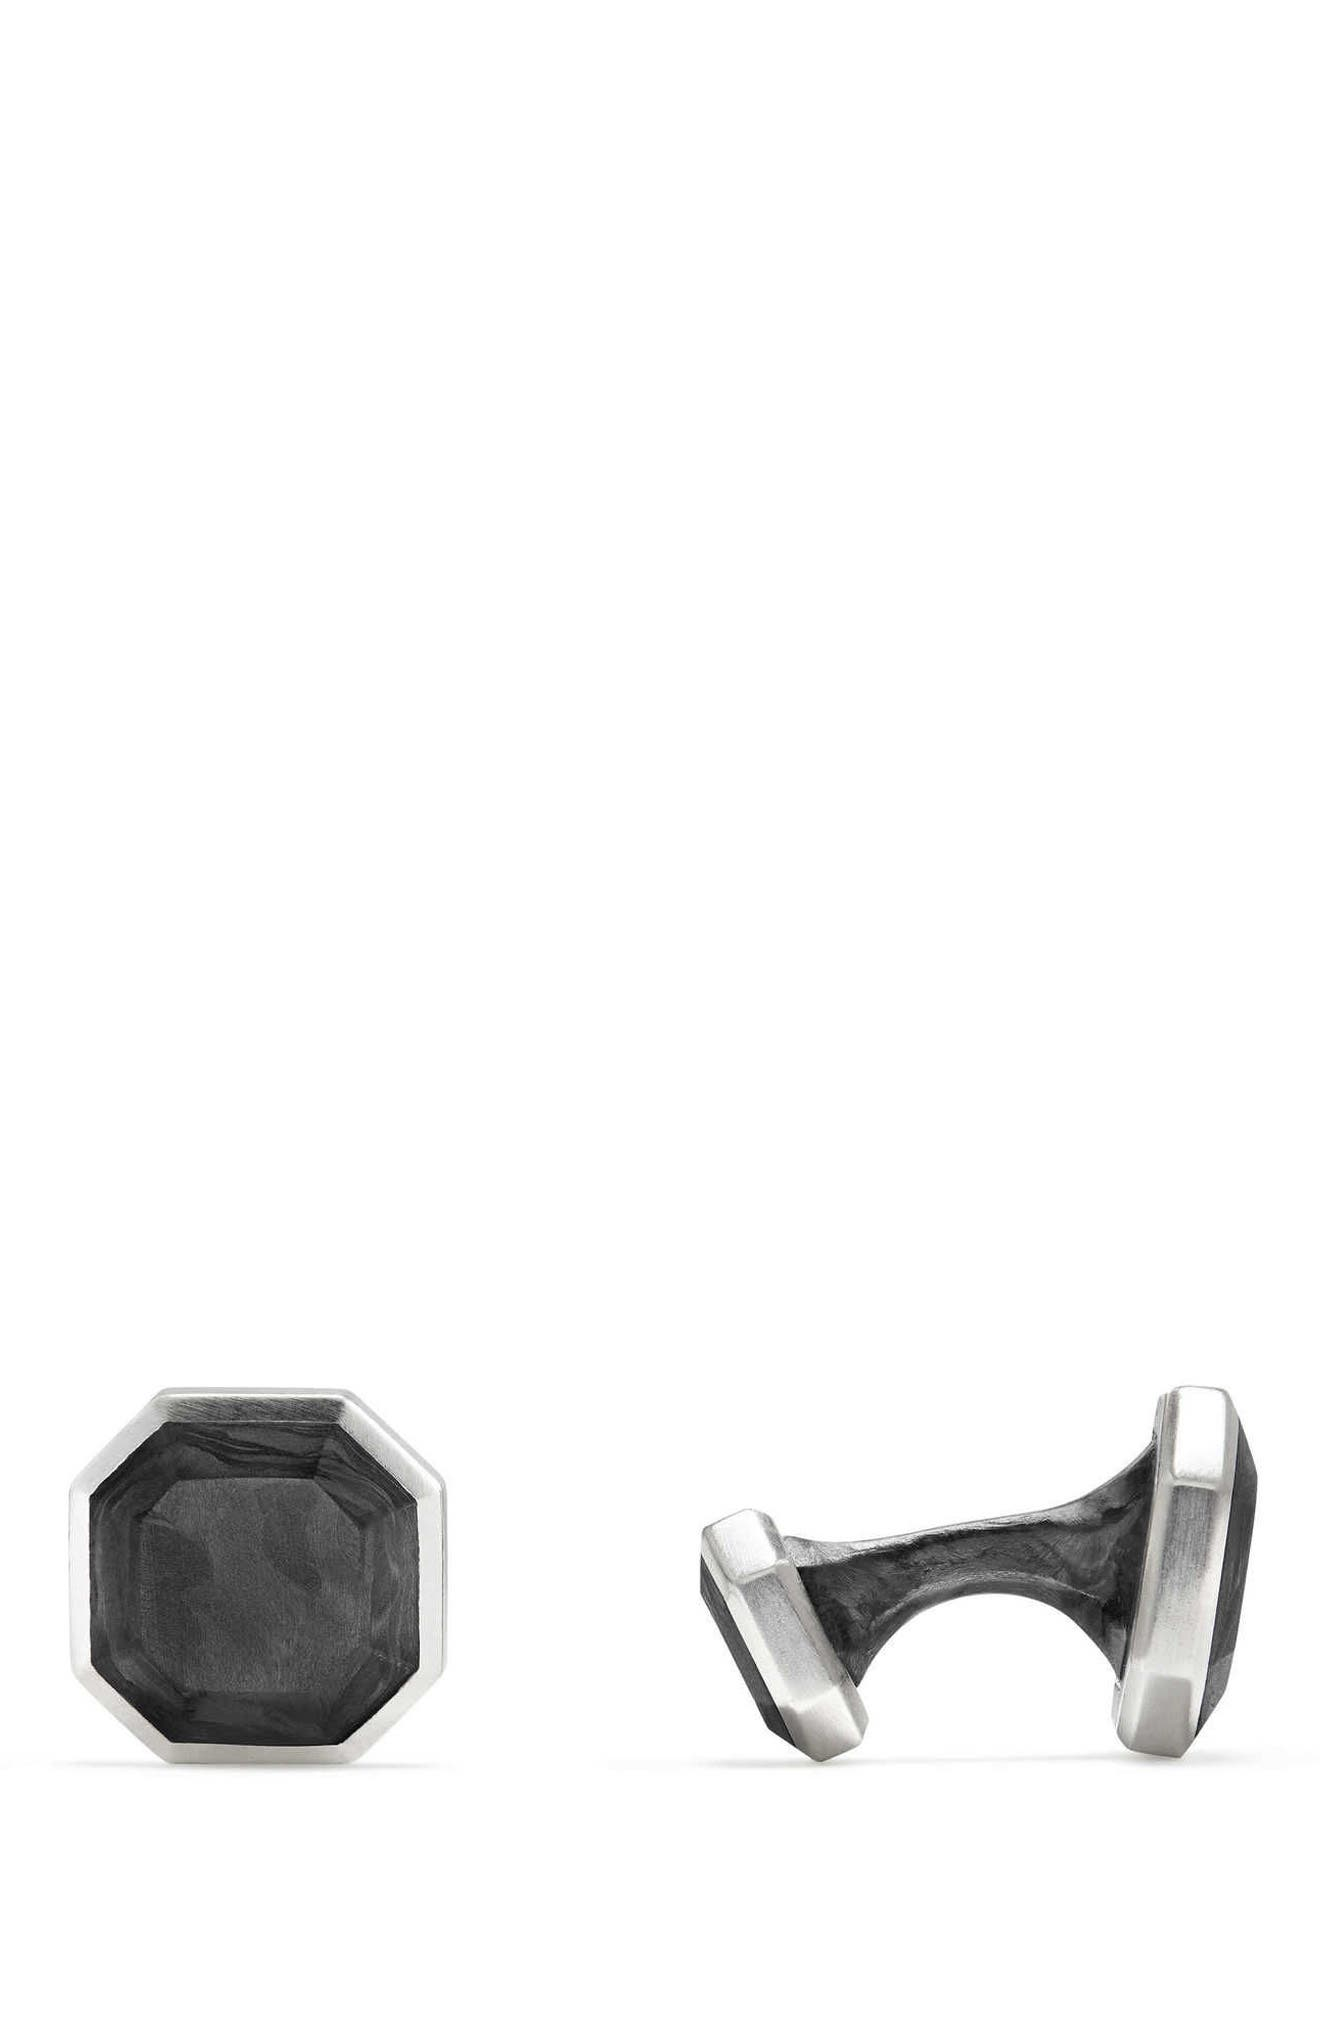 Forged Carbon Cuff Links,                             Alternate thumbnail 2, color,                             029